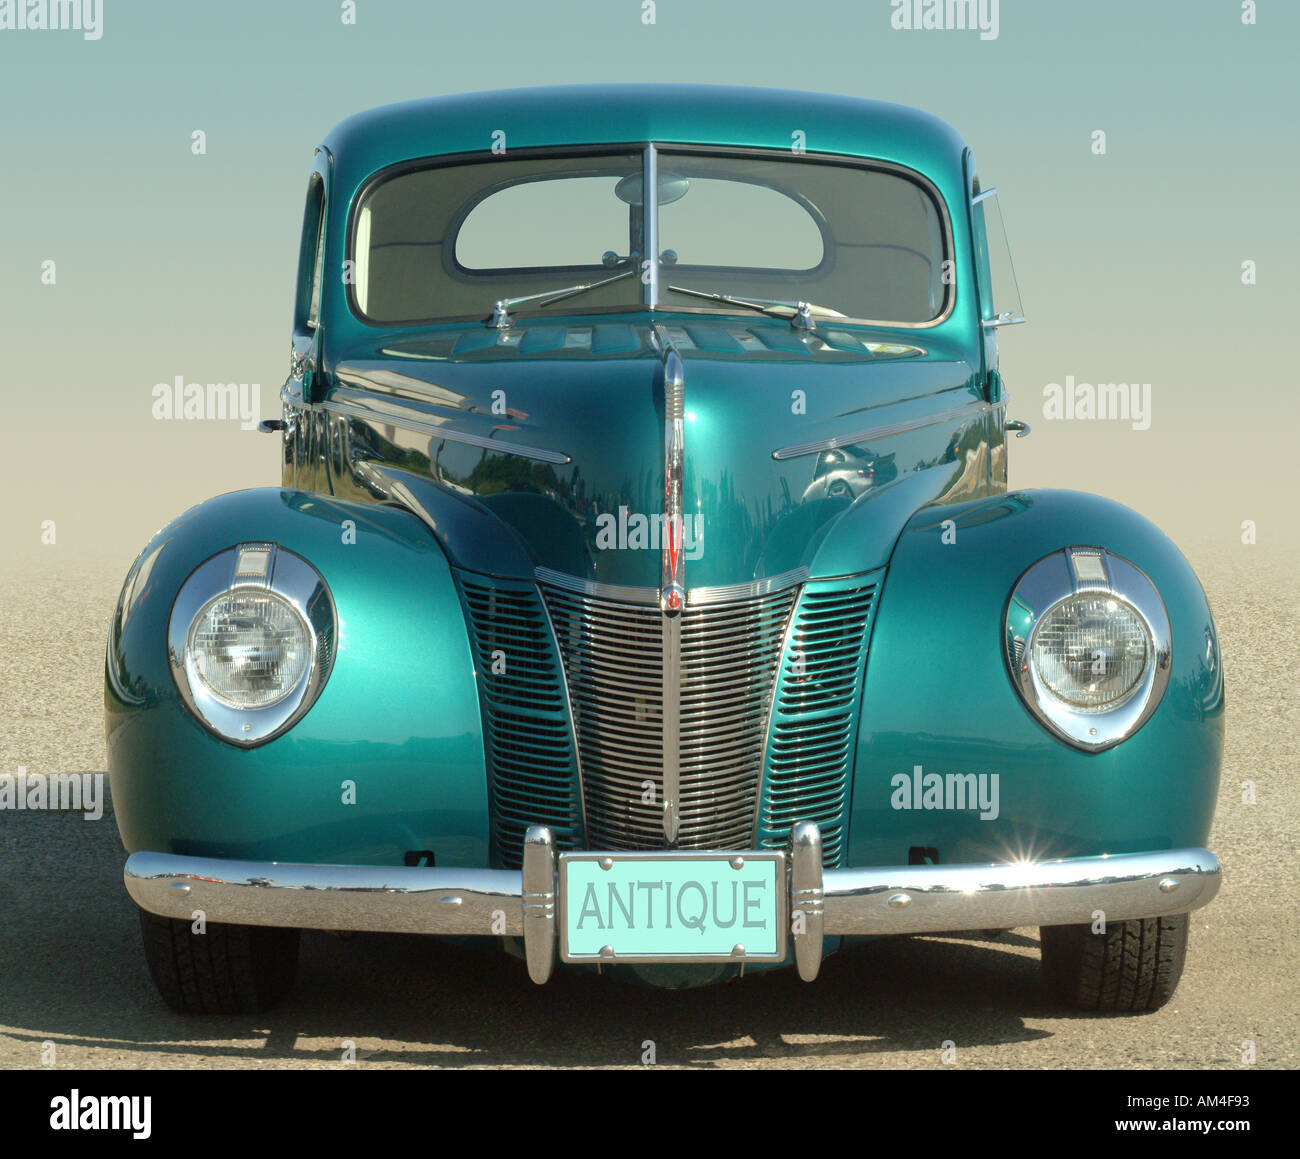 blue 1930s classic car or hot rod - Stock Image